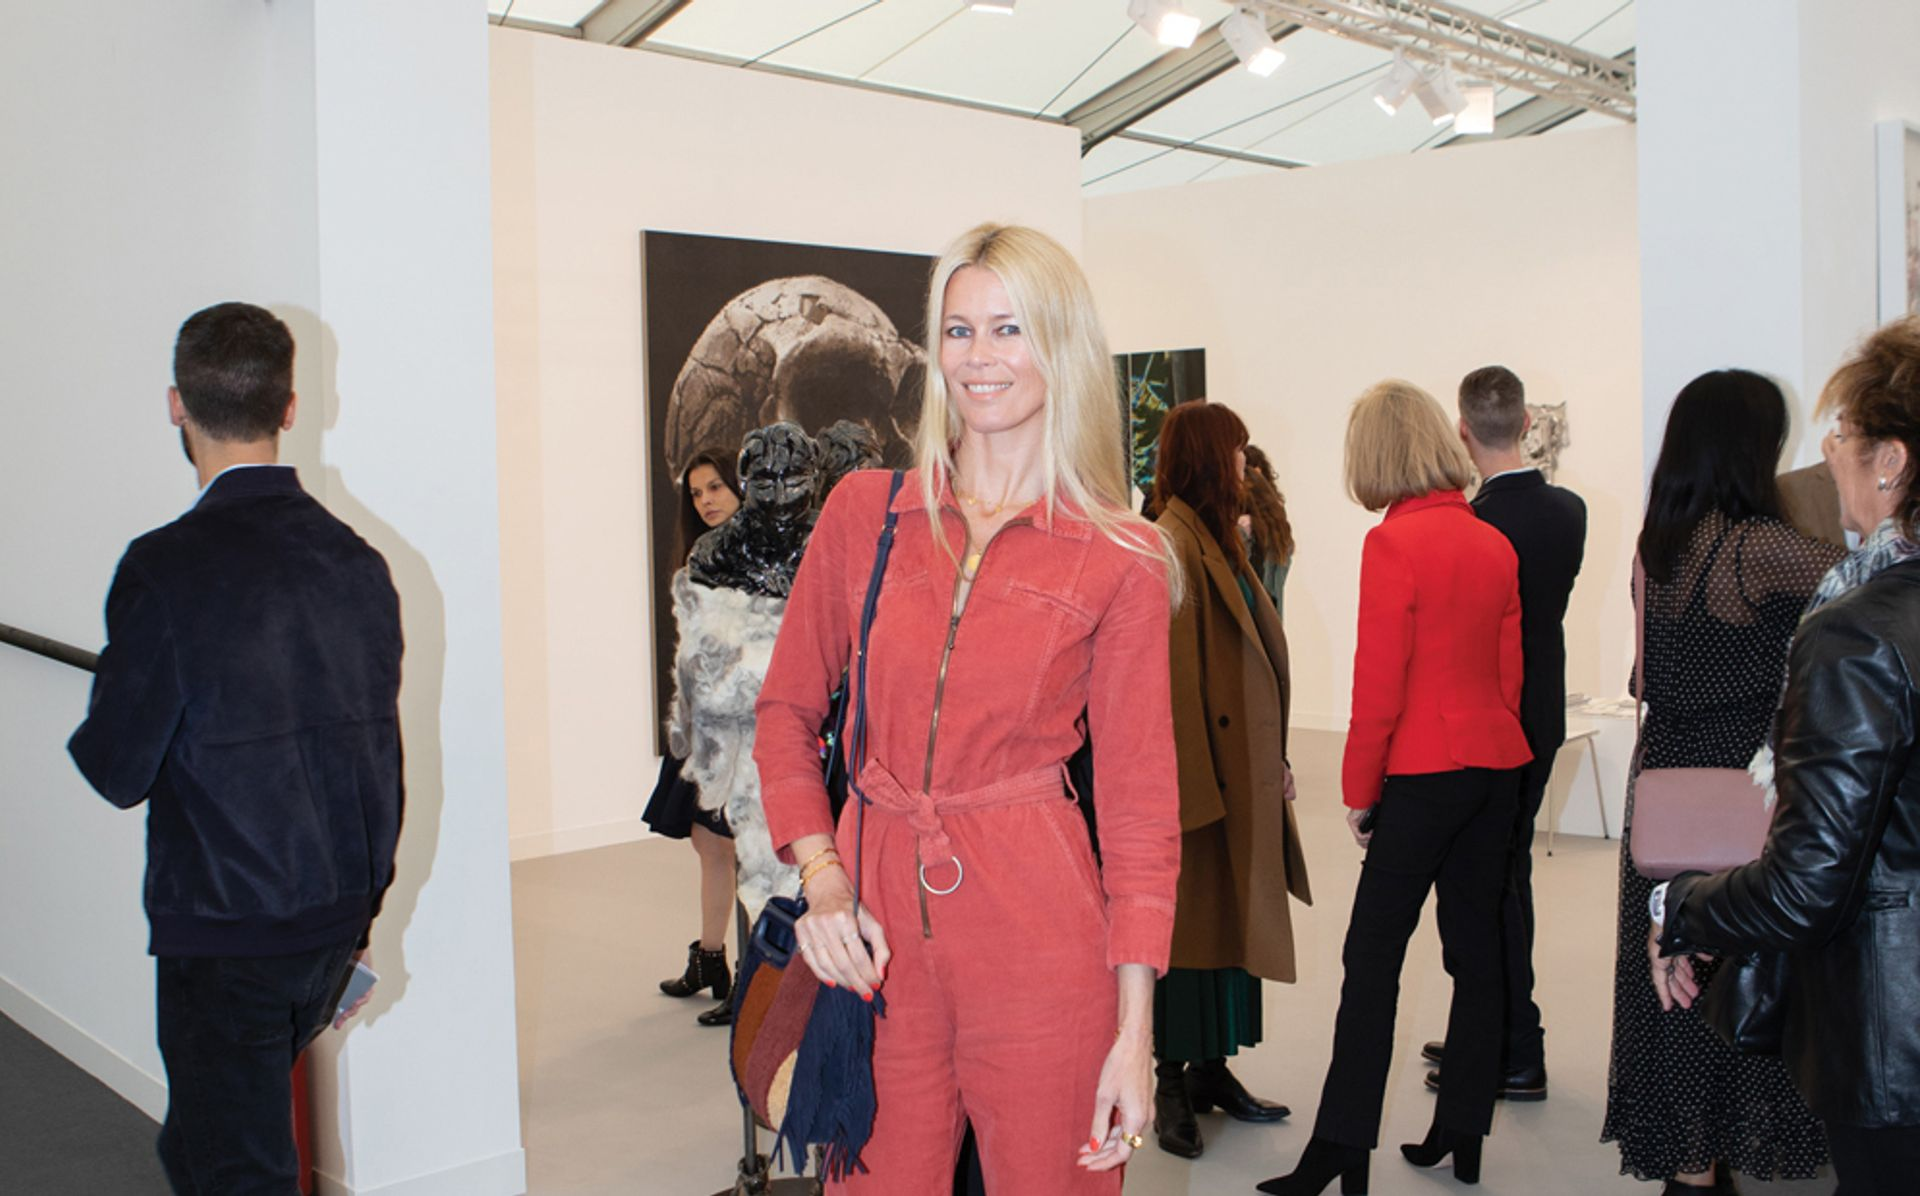 Claudia Schiffer at Frieze London's VIP preview David Owens